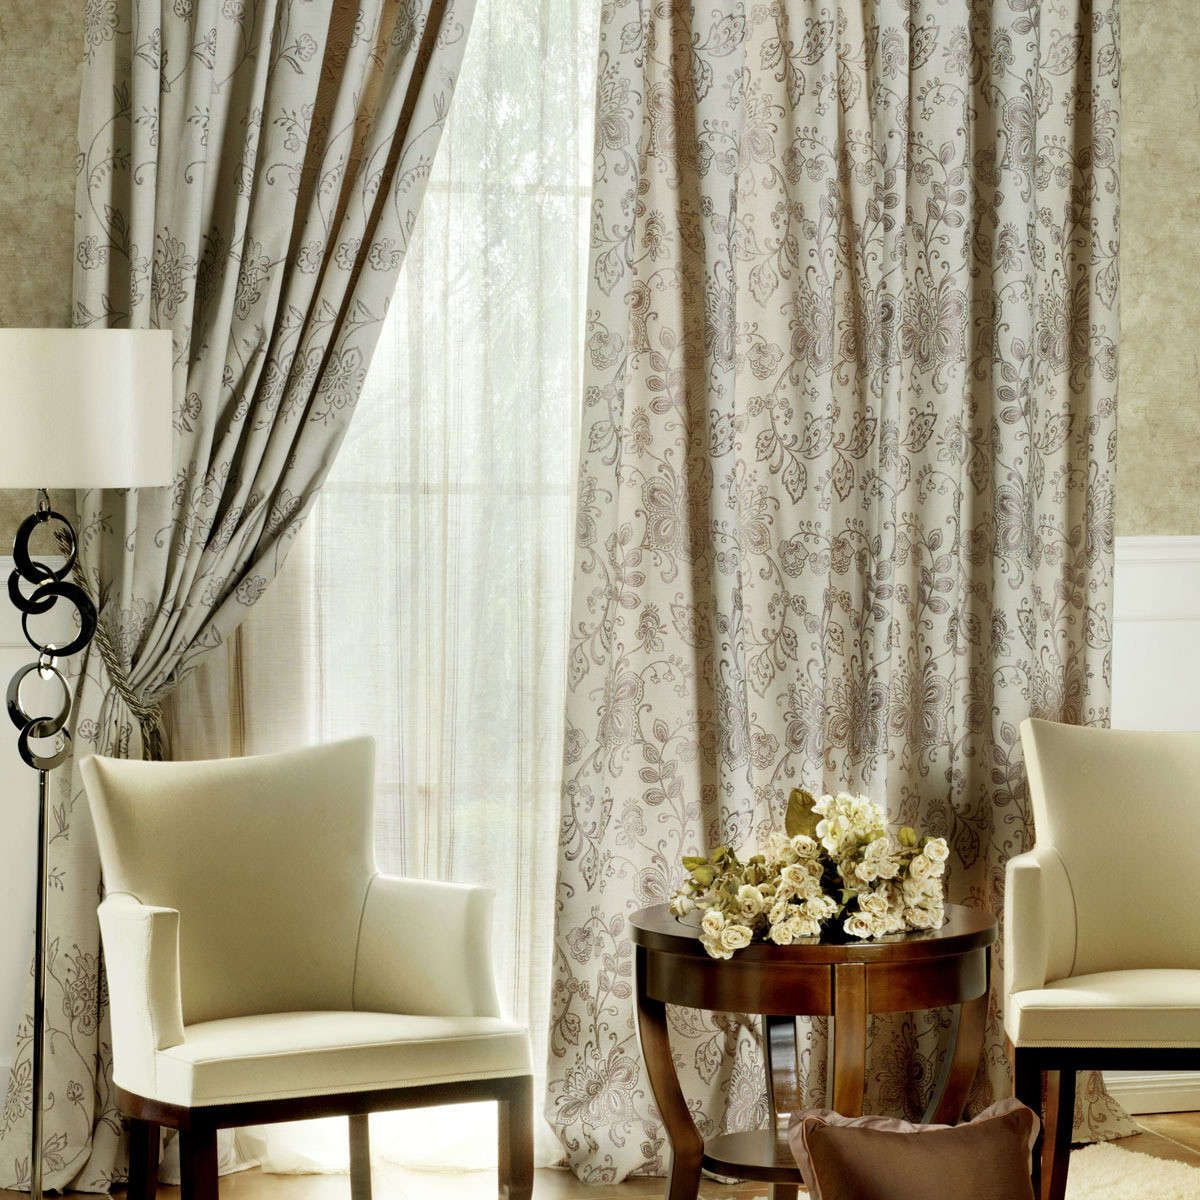 Living Room Curtain Designs Alluring Užuolaidos  Domus Lumina Užuolaidos  Pinterest  House Decorating Design